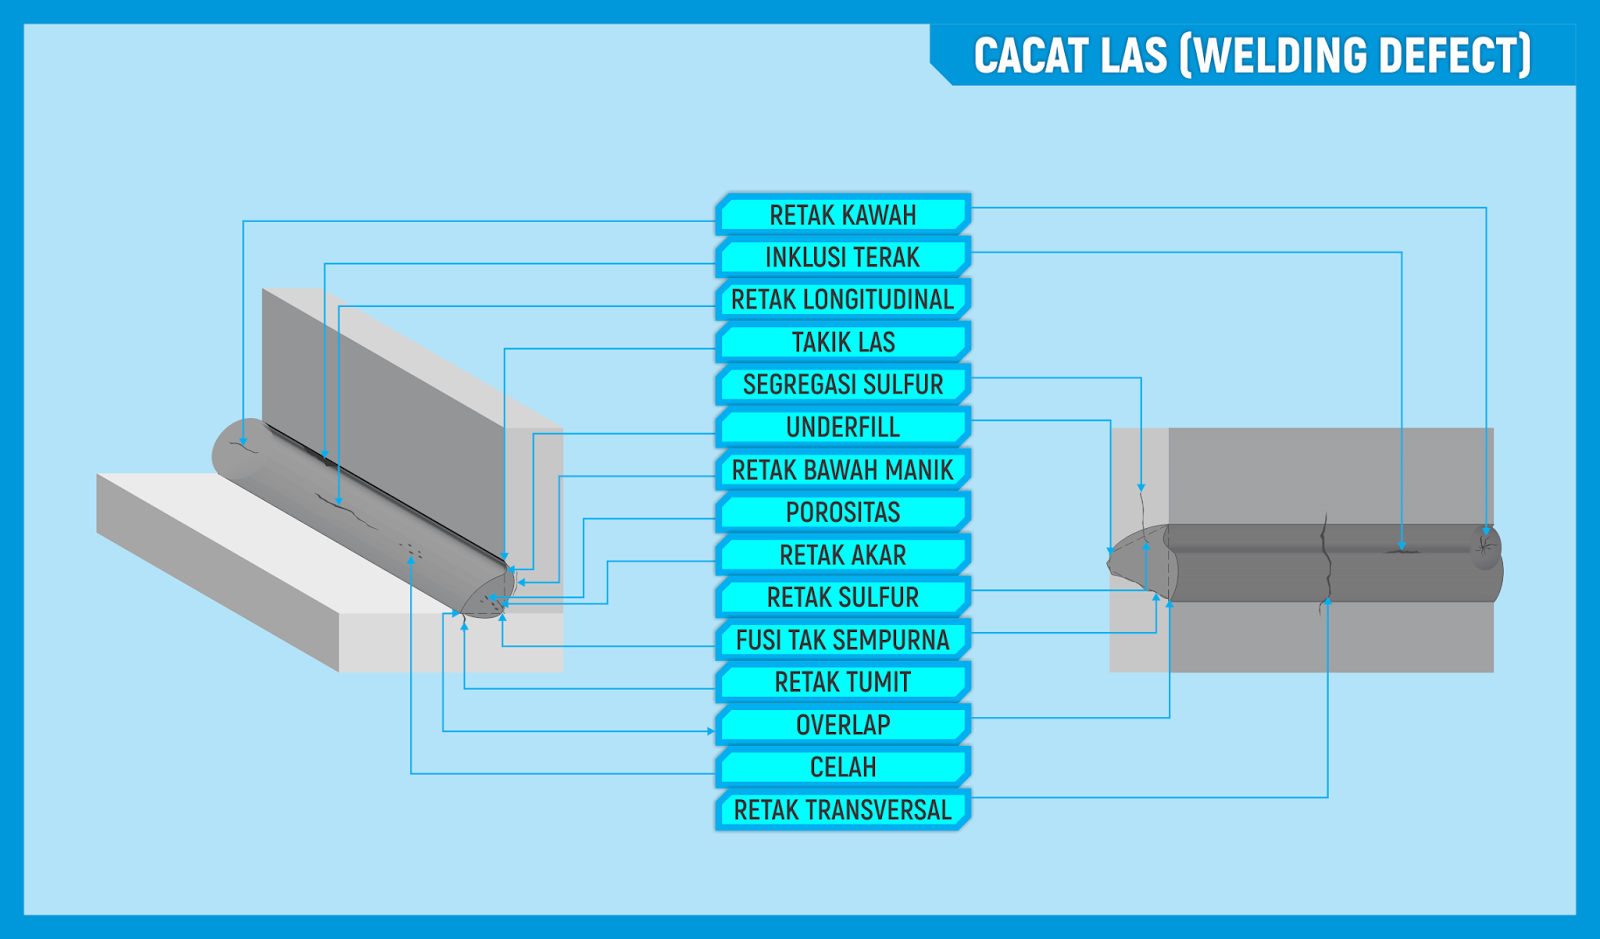 Cacat Las Welding Defect I Defects Diagram